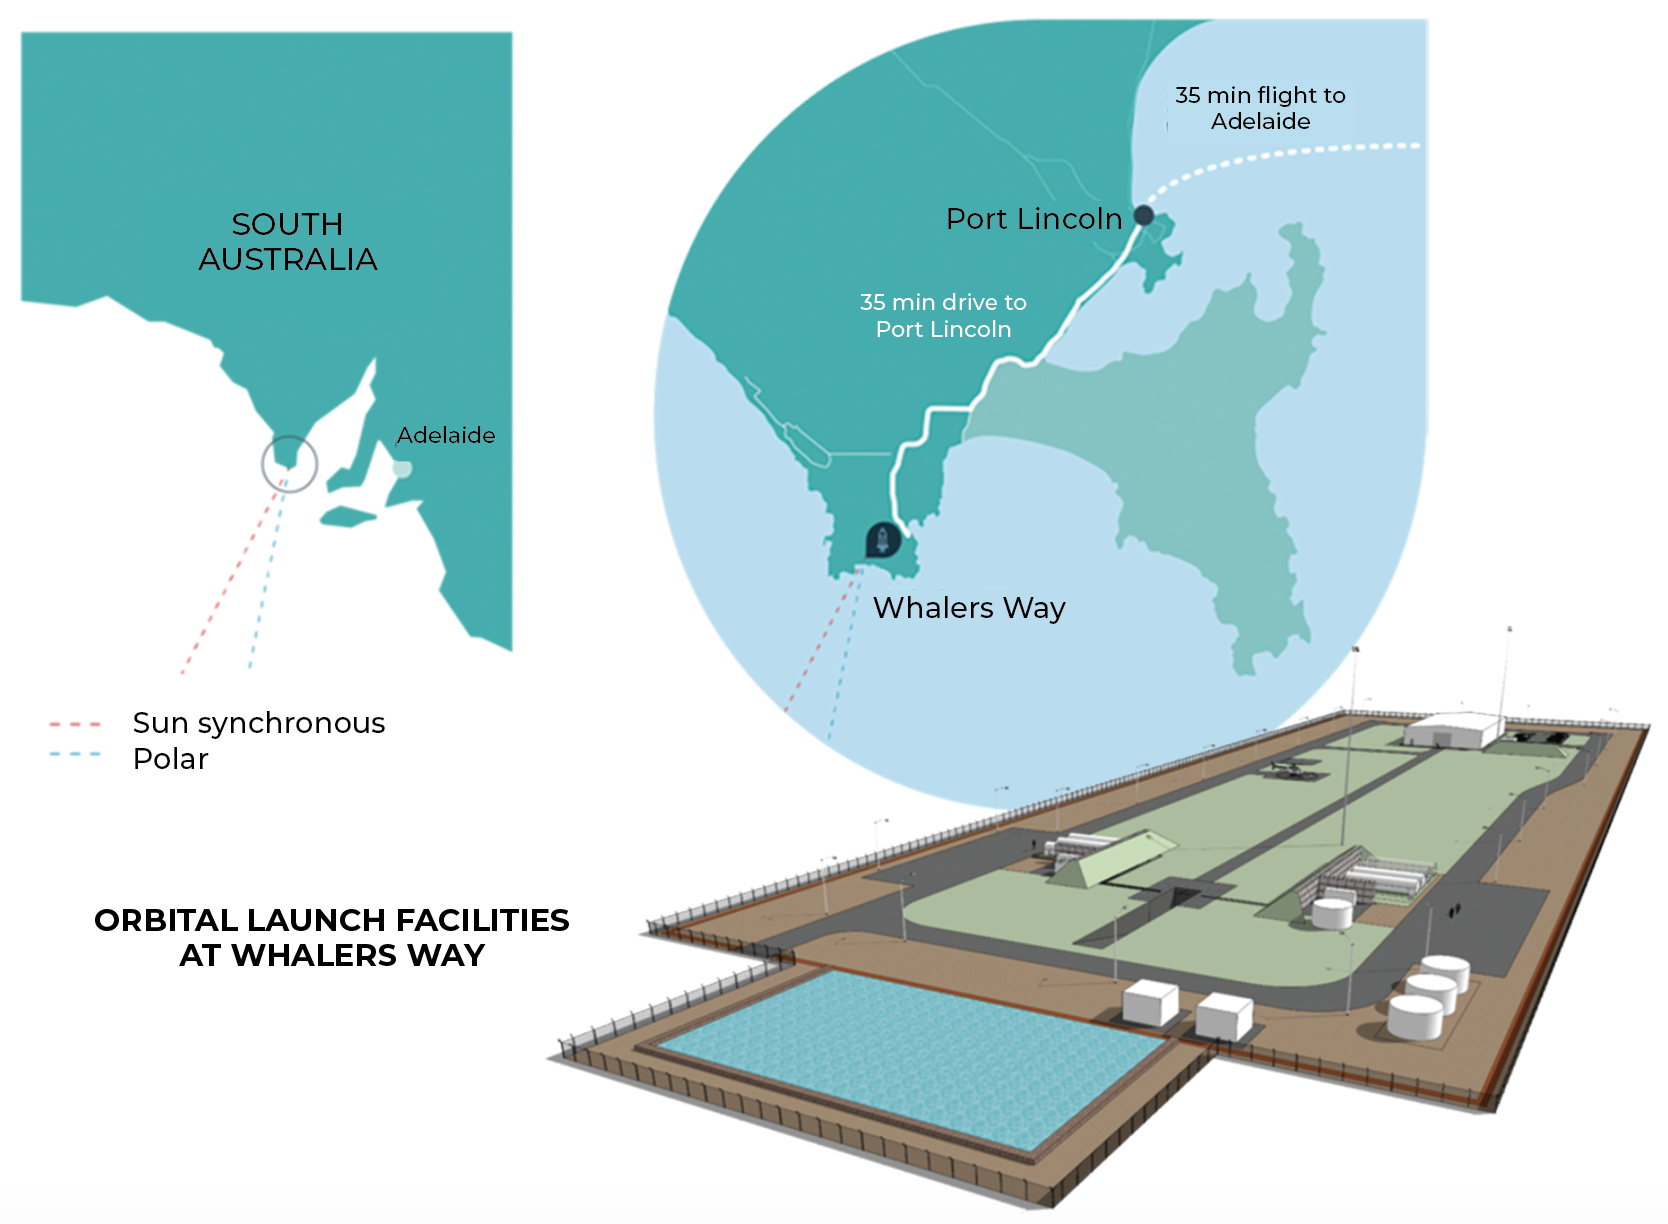 Southern Launch's Whalers Way facility will be used for polar orbital missions.